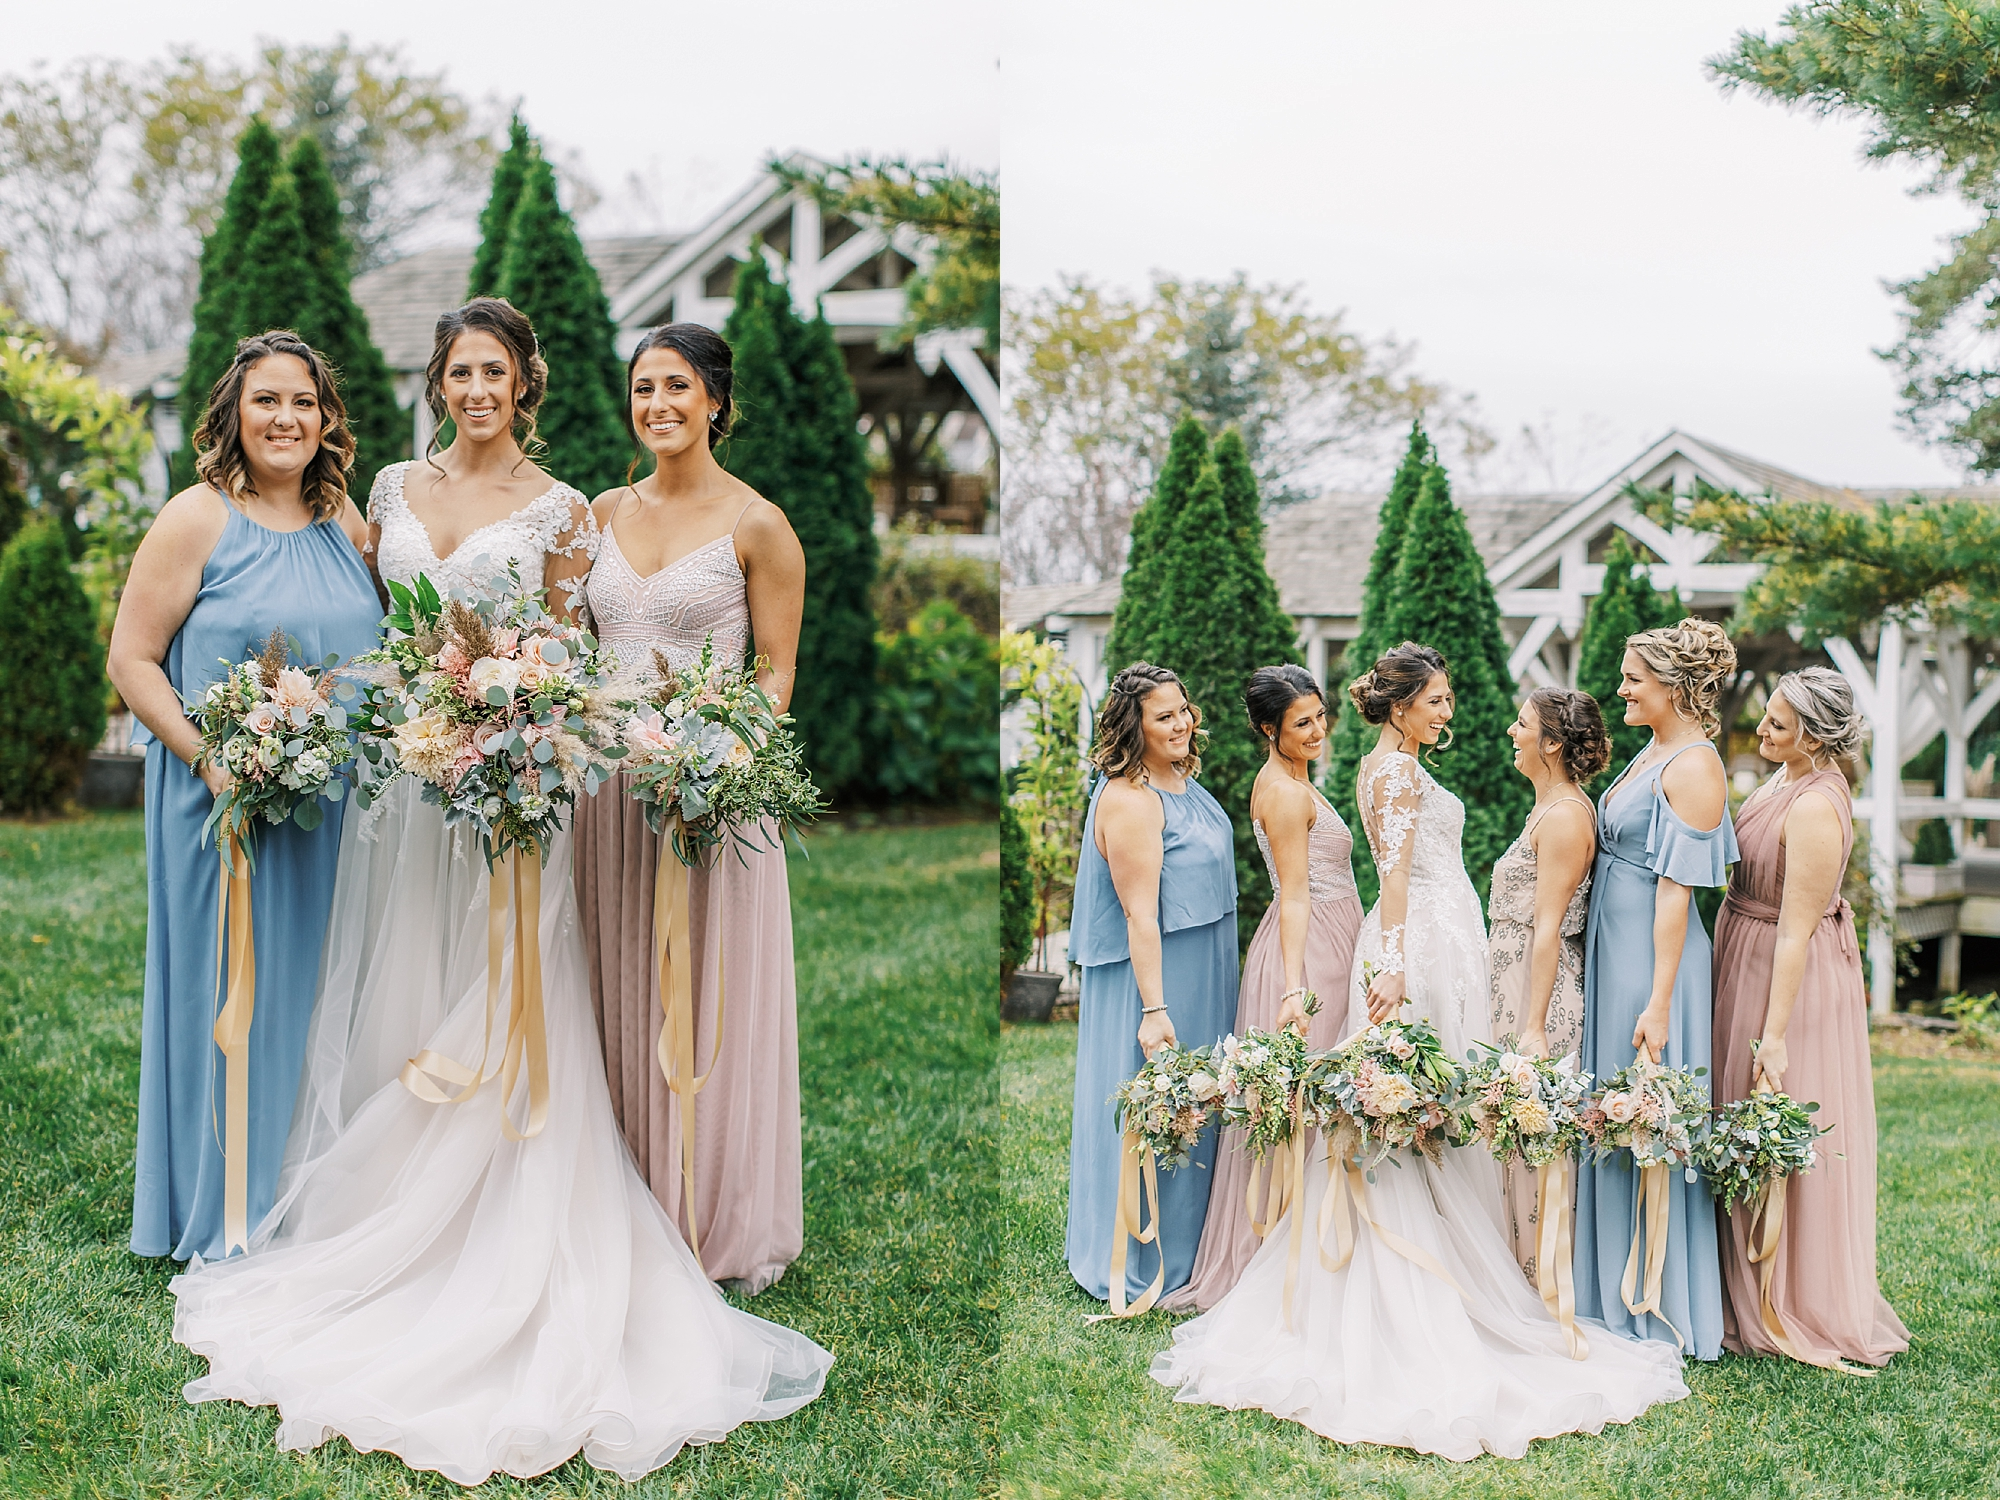 Sweet Garden Wedding Photography Abbie Holmes Estate in Cape May NJ by Magdalena Studios 0032